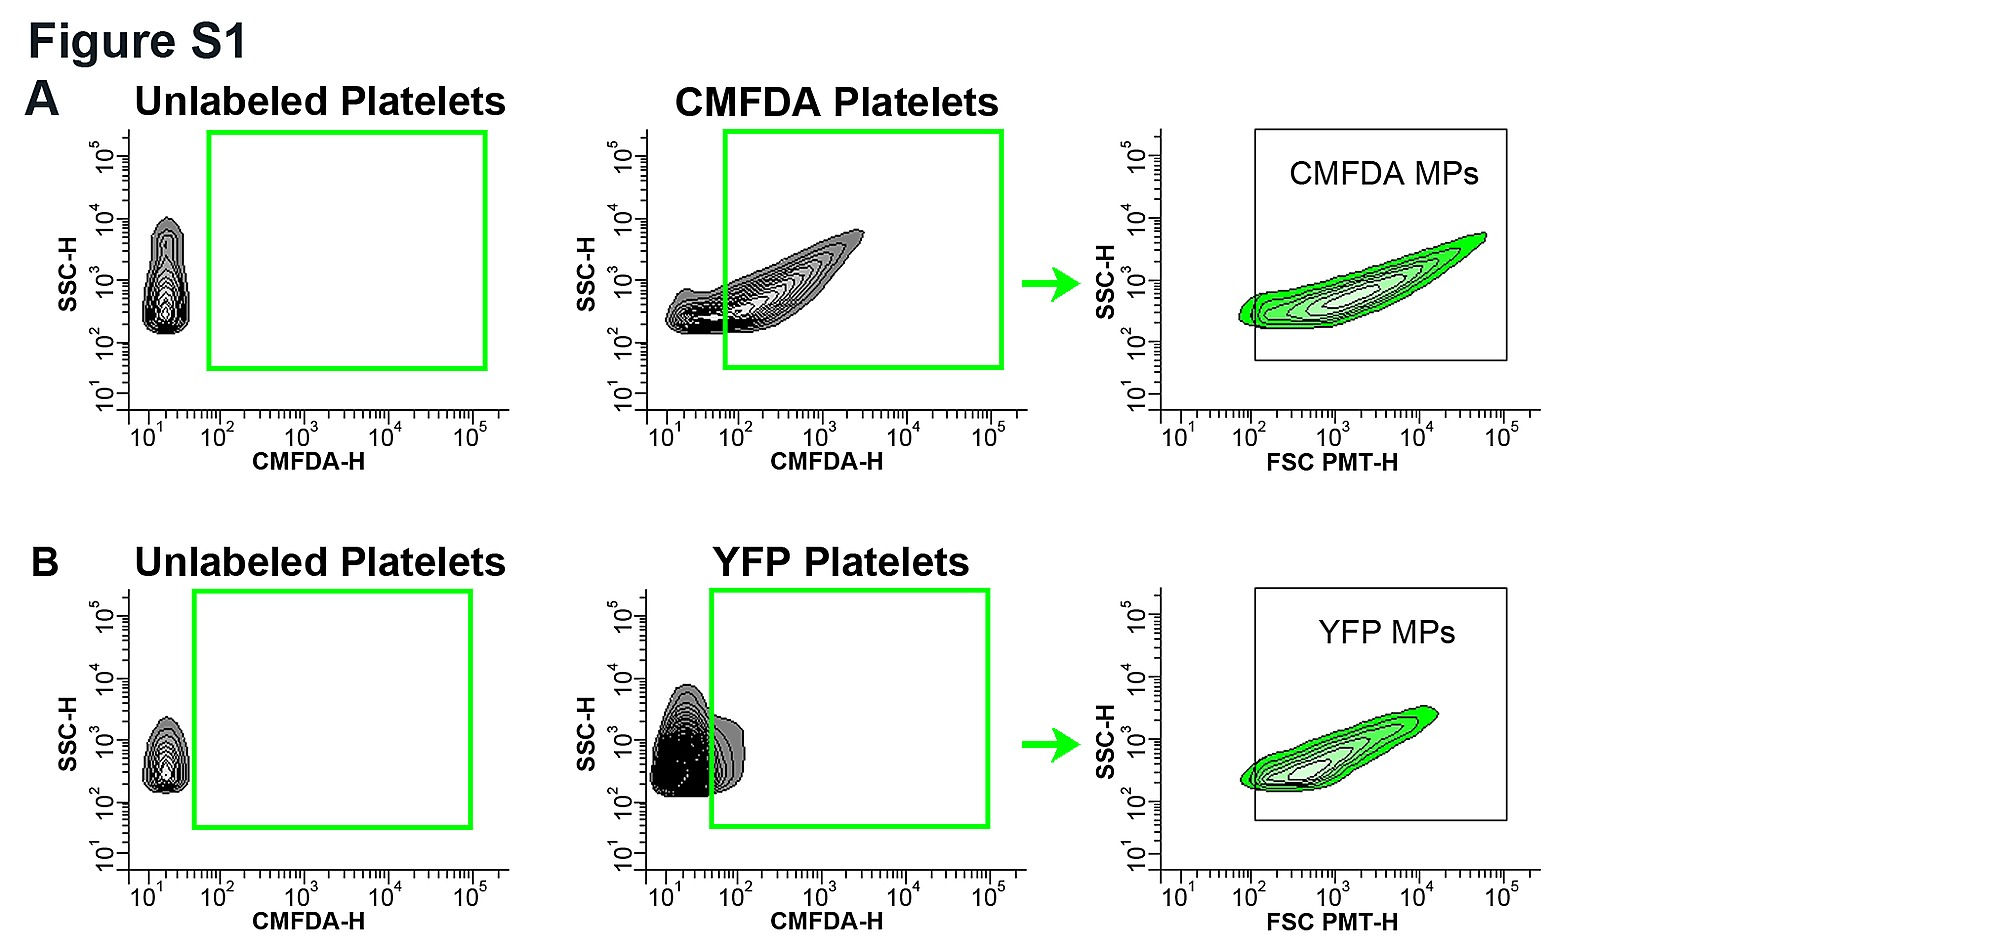 activated platelets flow cytometry